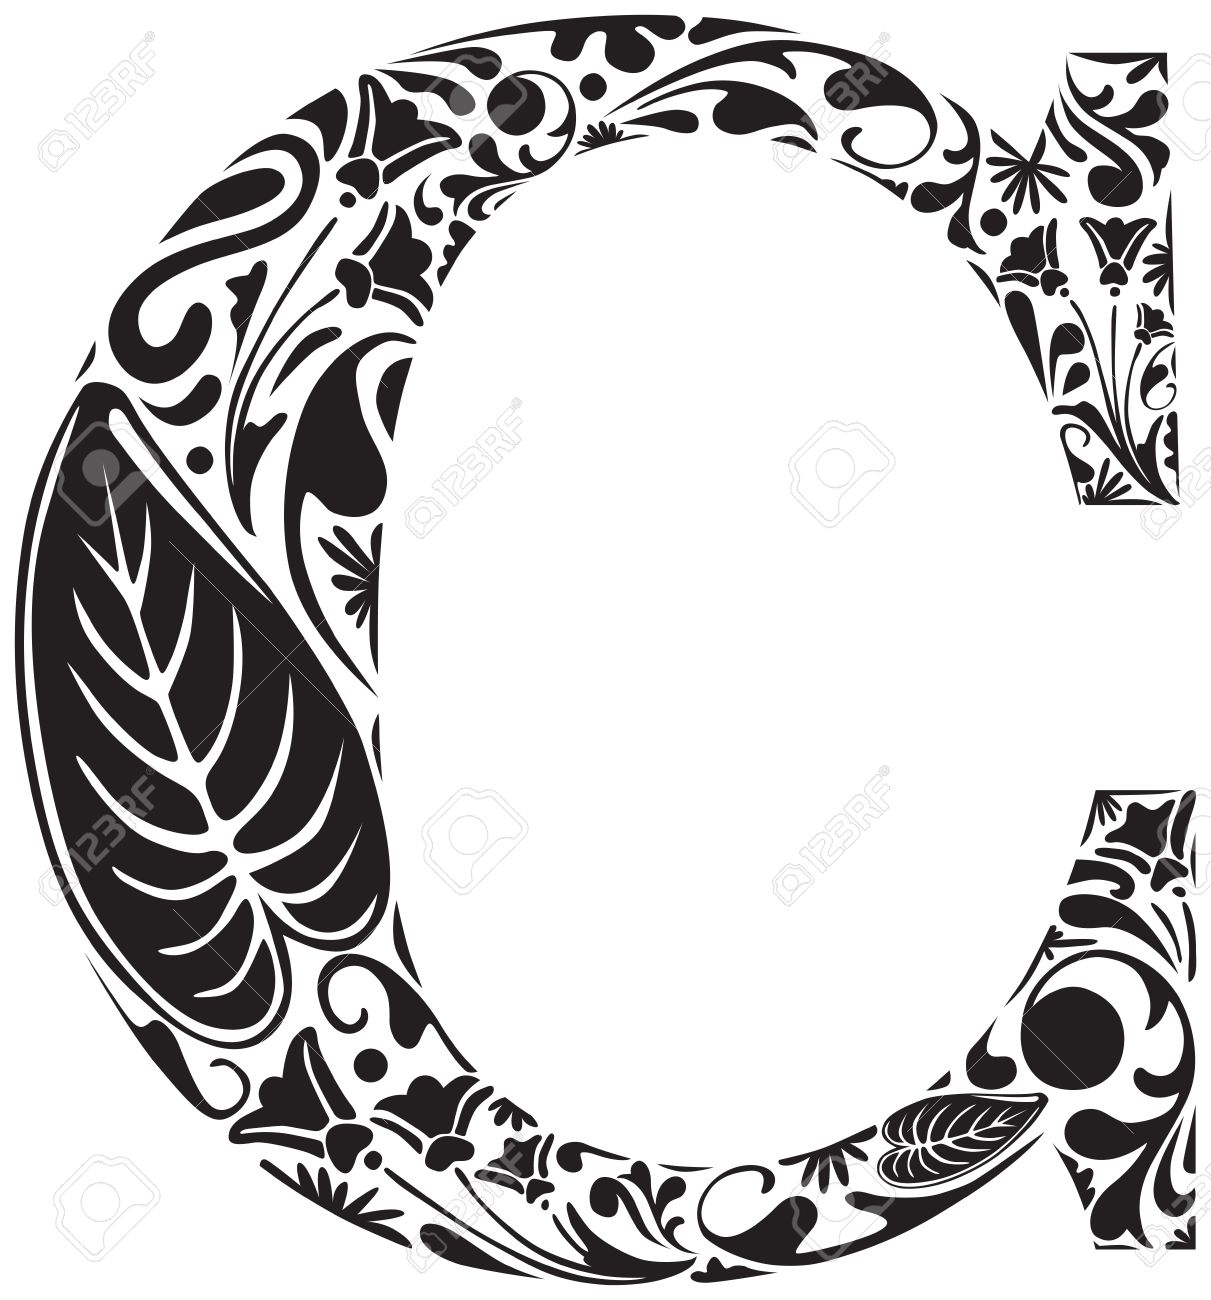 Floral Initial Capital Letter C Royalty Free Cliparts Vectors And